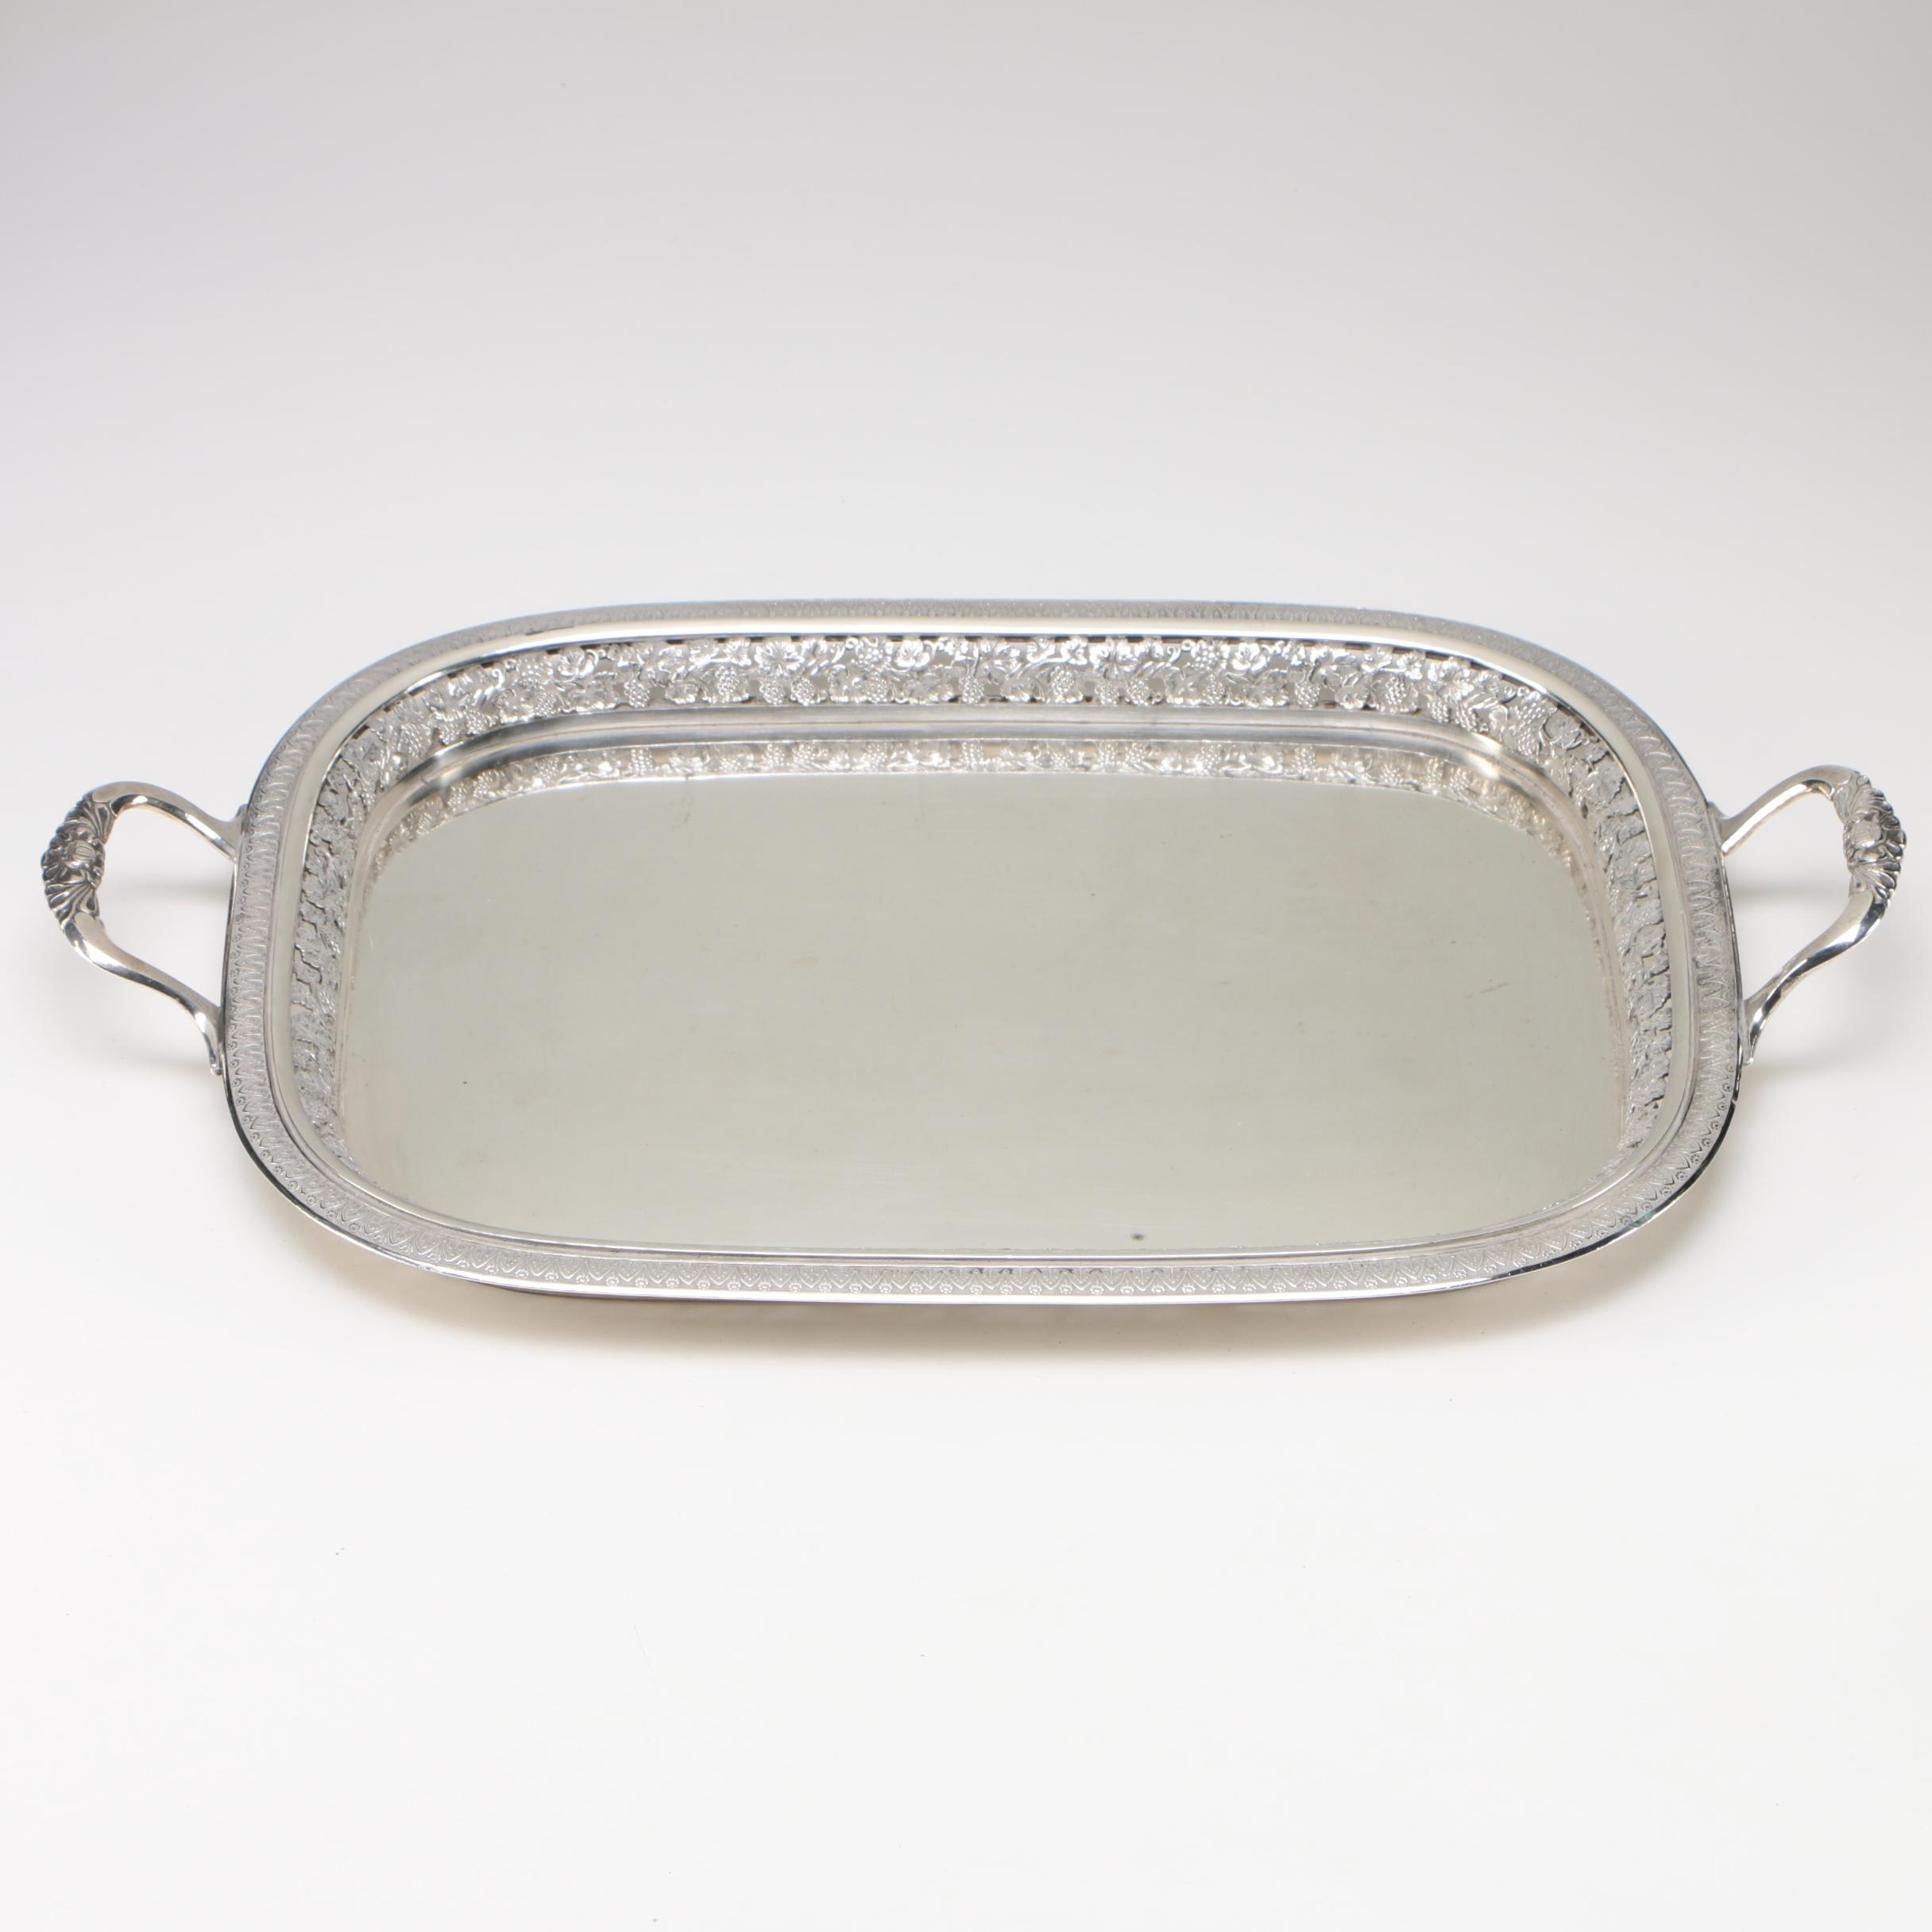 20th Century Elkington & Co. Coin Silver Tray with Pierced Gallery